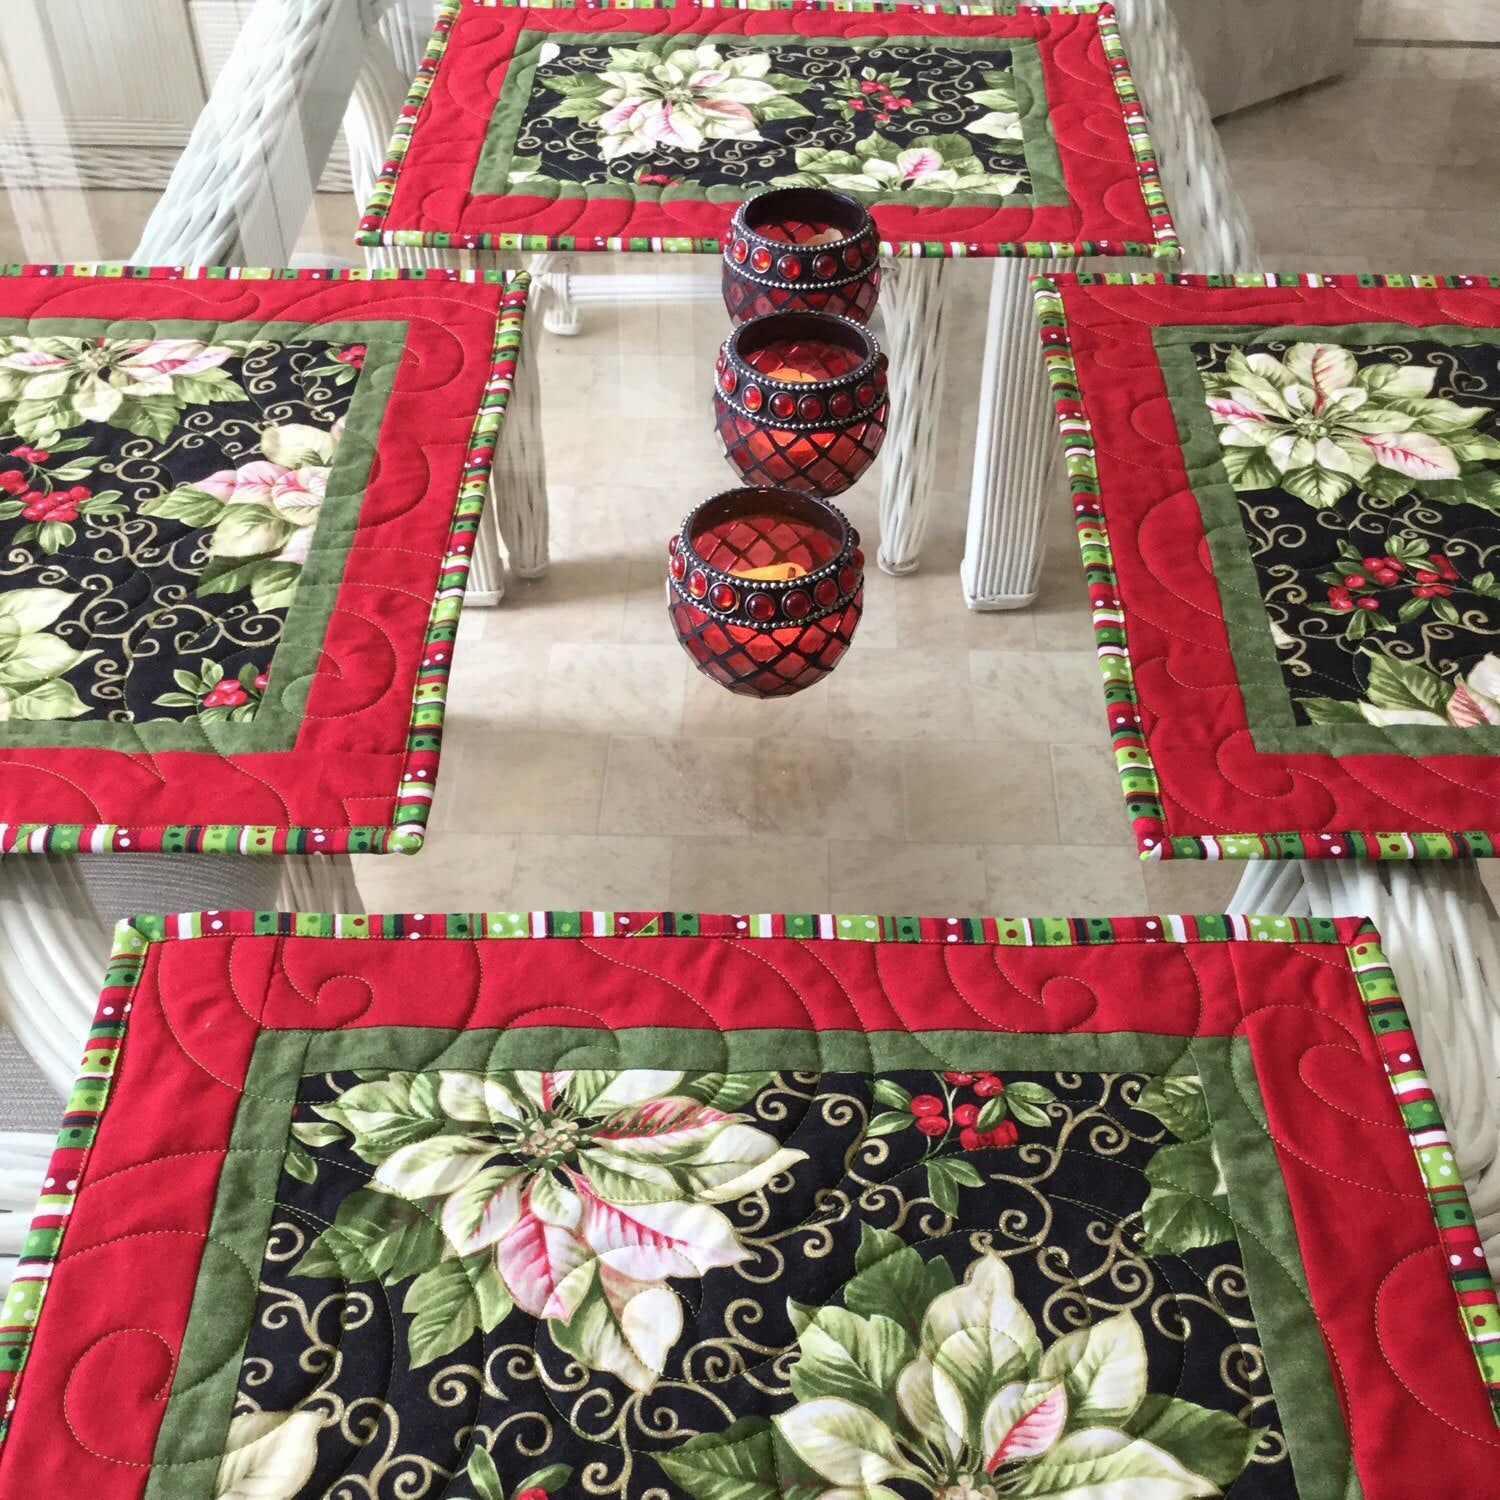 Christmas Placemats Poinsettia Mats Holiday Placemats Etsy Christmas Placemats Place Mats Quilted Placemats